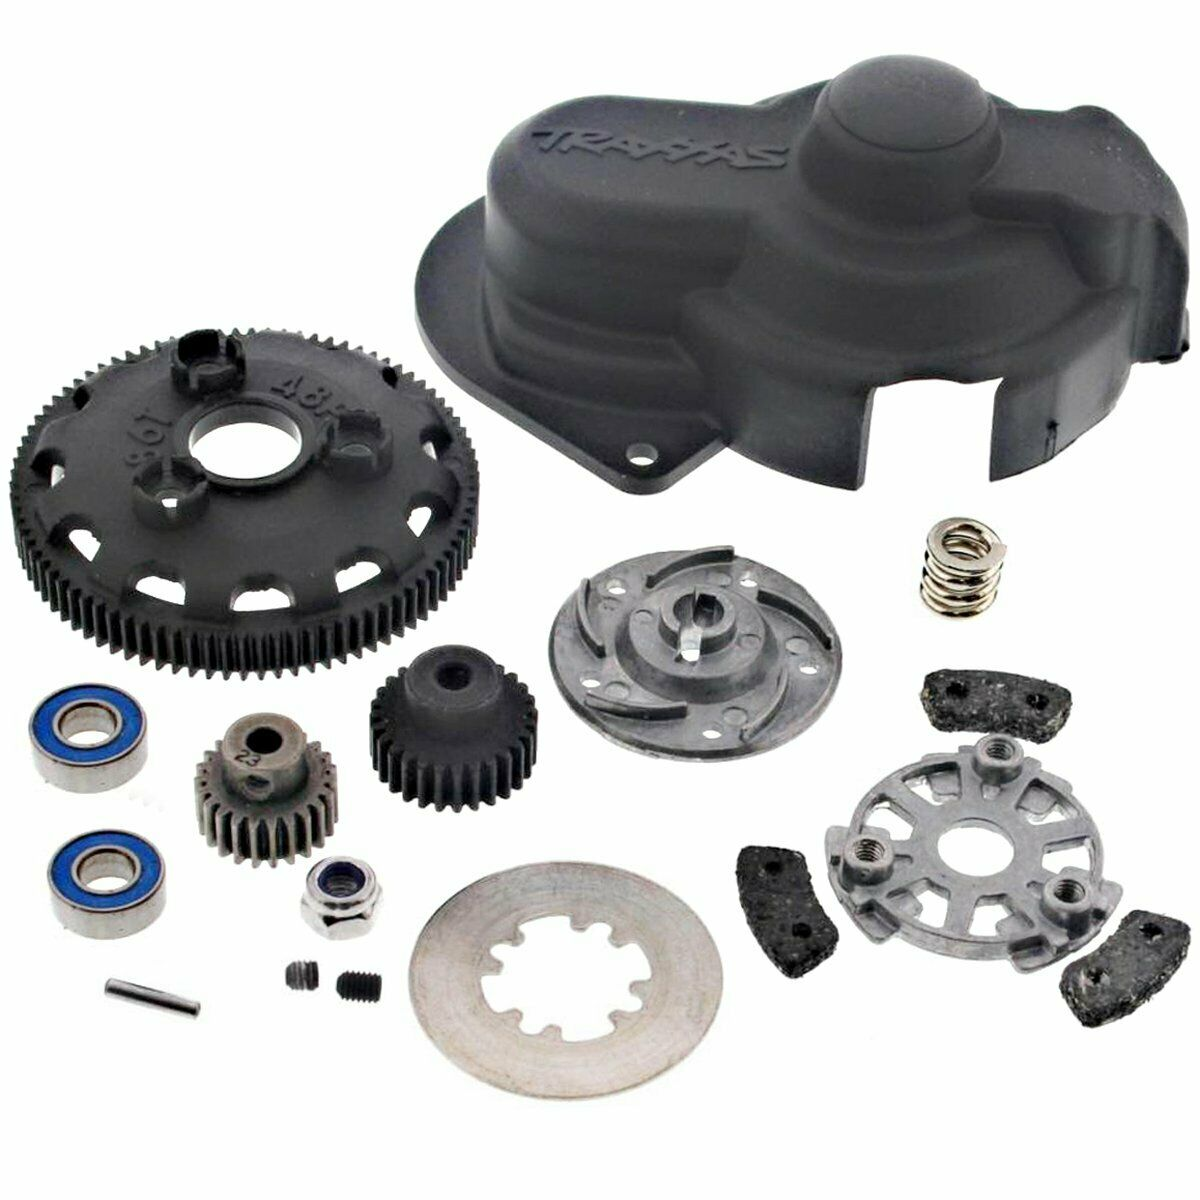 Traxxas 1 10 Slash 2WD VXL 86T SPUR SPUR SPUR GEAR, SLIPPER CLUTCH, TWO PINIONS & COVER 4804c6